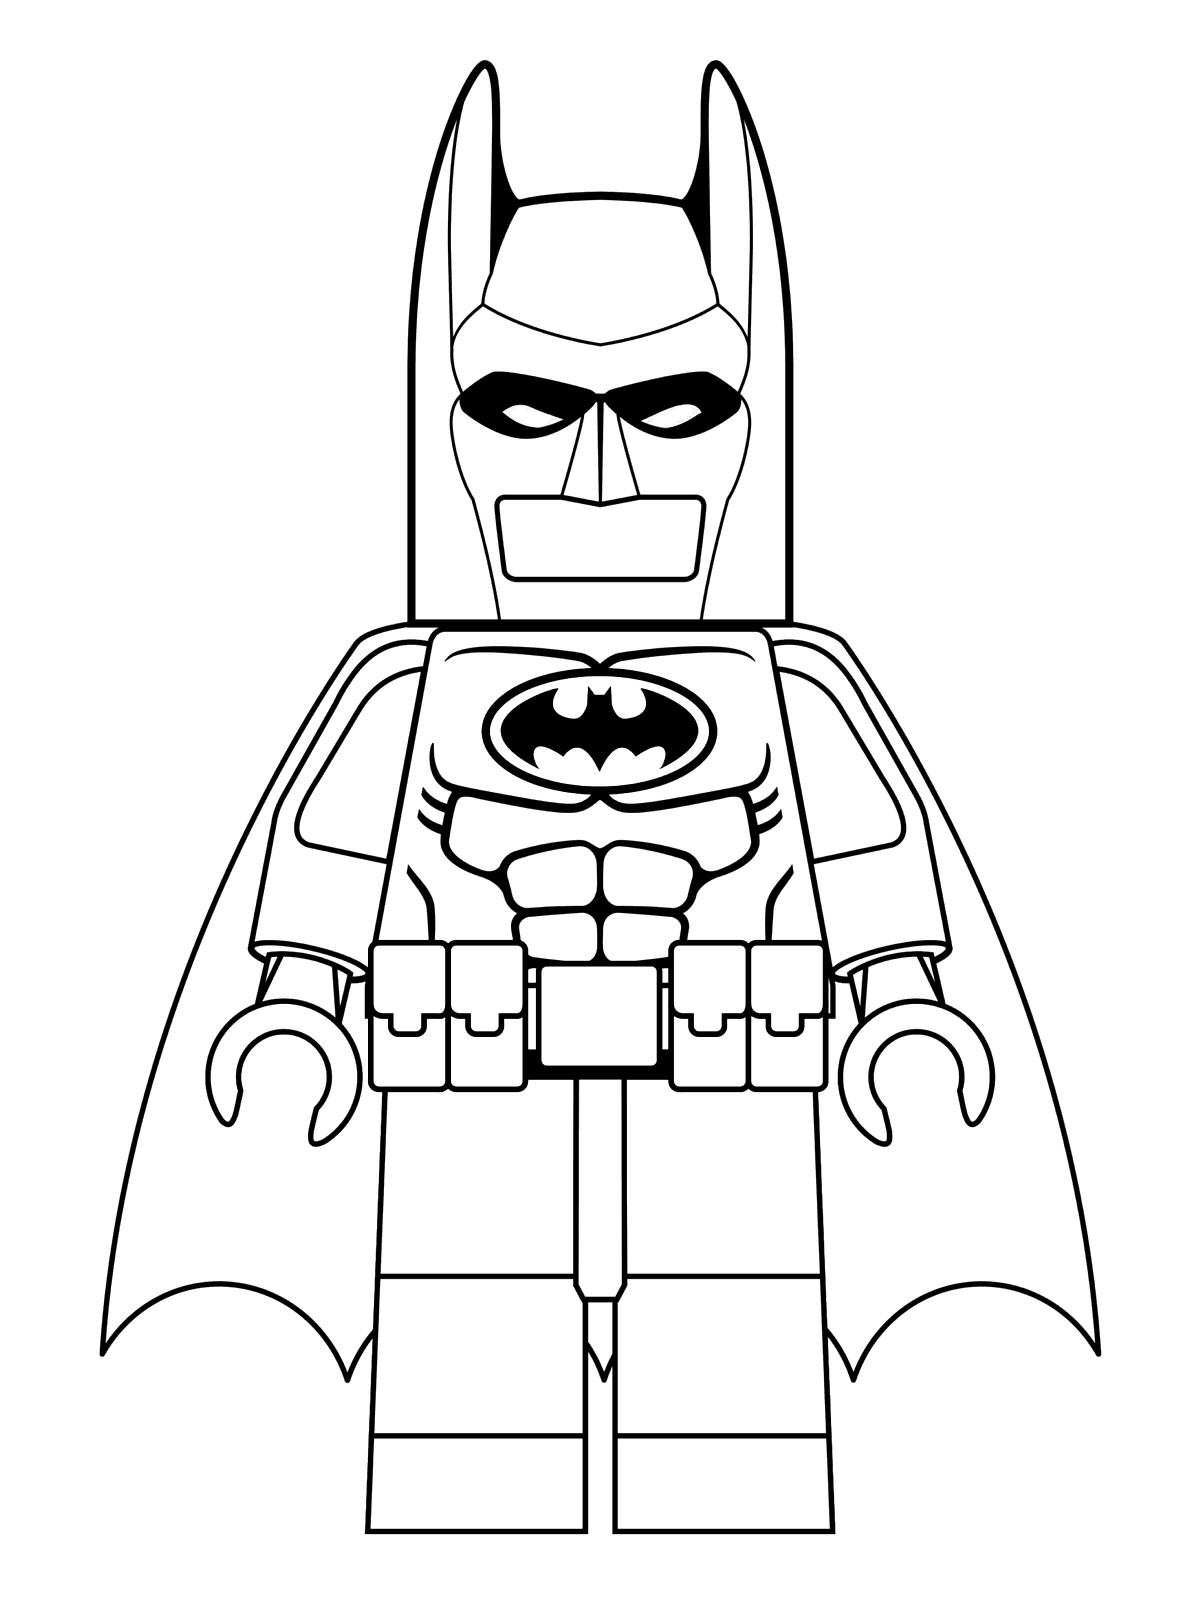 Kids-n-fun.com | 53 coloring pages of Lego Batman Movie